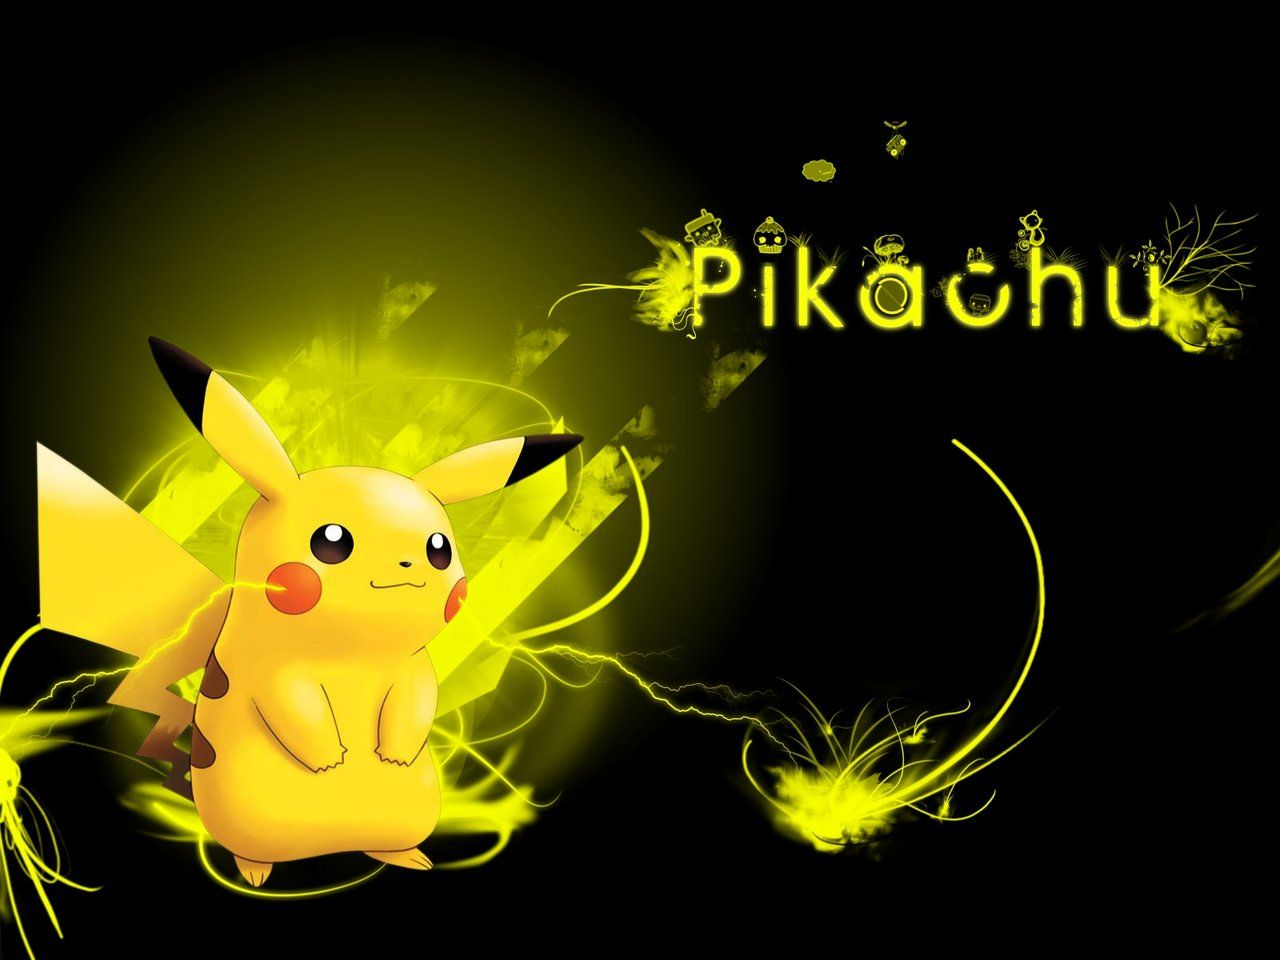 Pikachu wallpaper by on